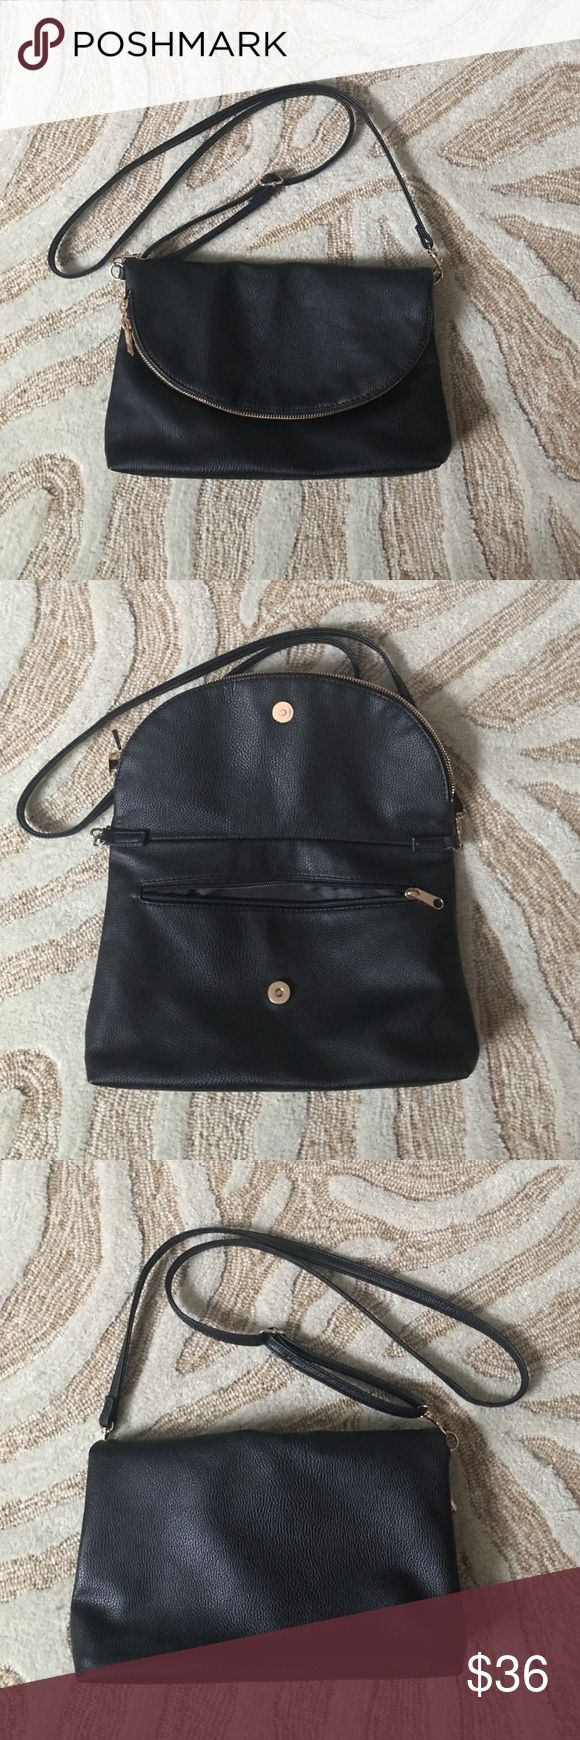 H&M Purse Black fold-over purse with yellow gold zipper. Used only once, practically brand new. Interior is flawless. H&M Bags Crossbody Bags